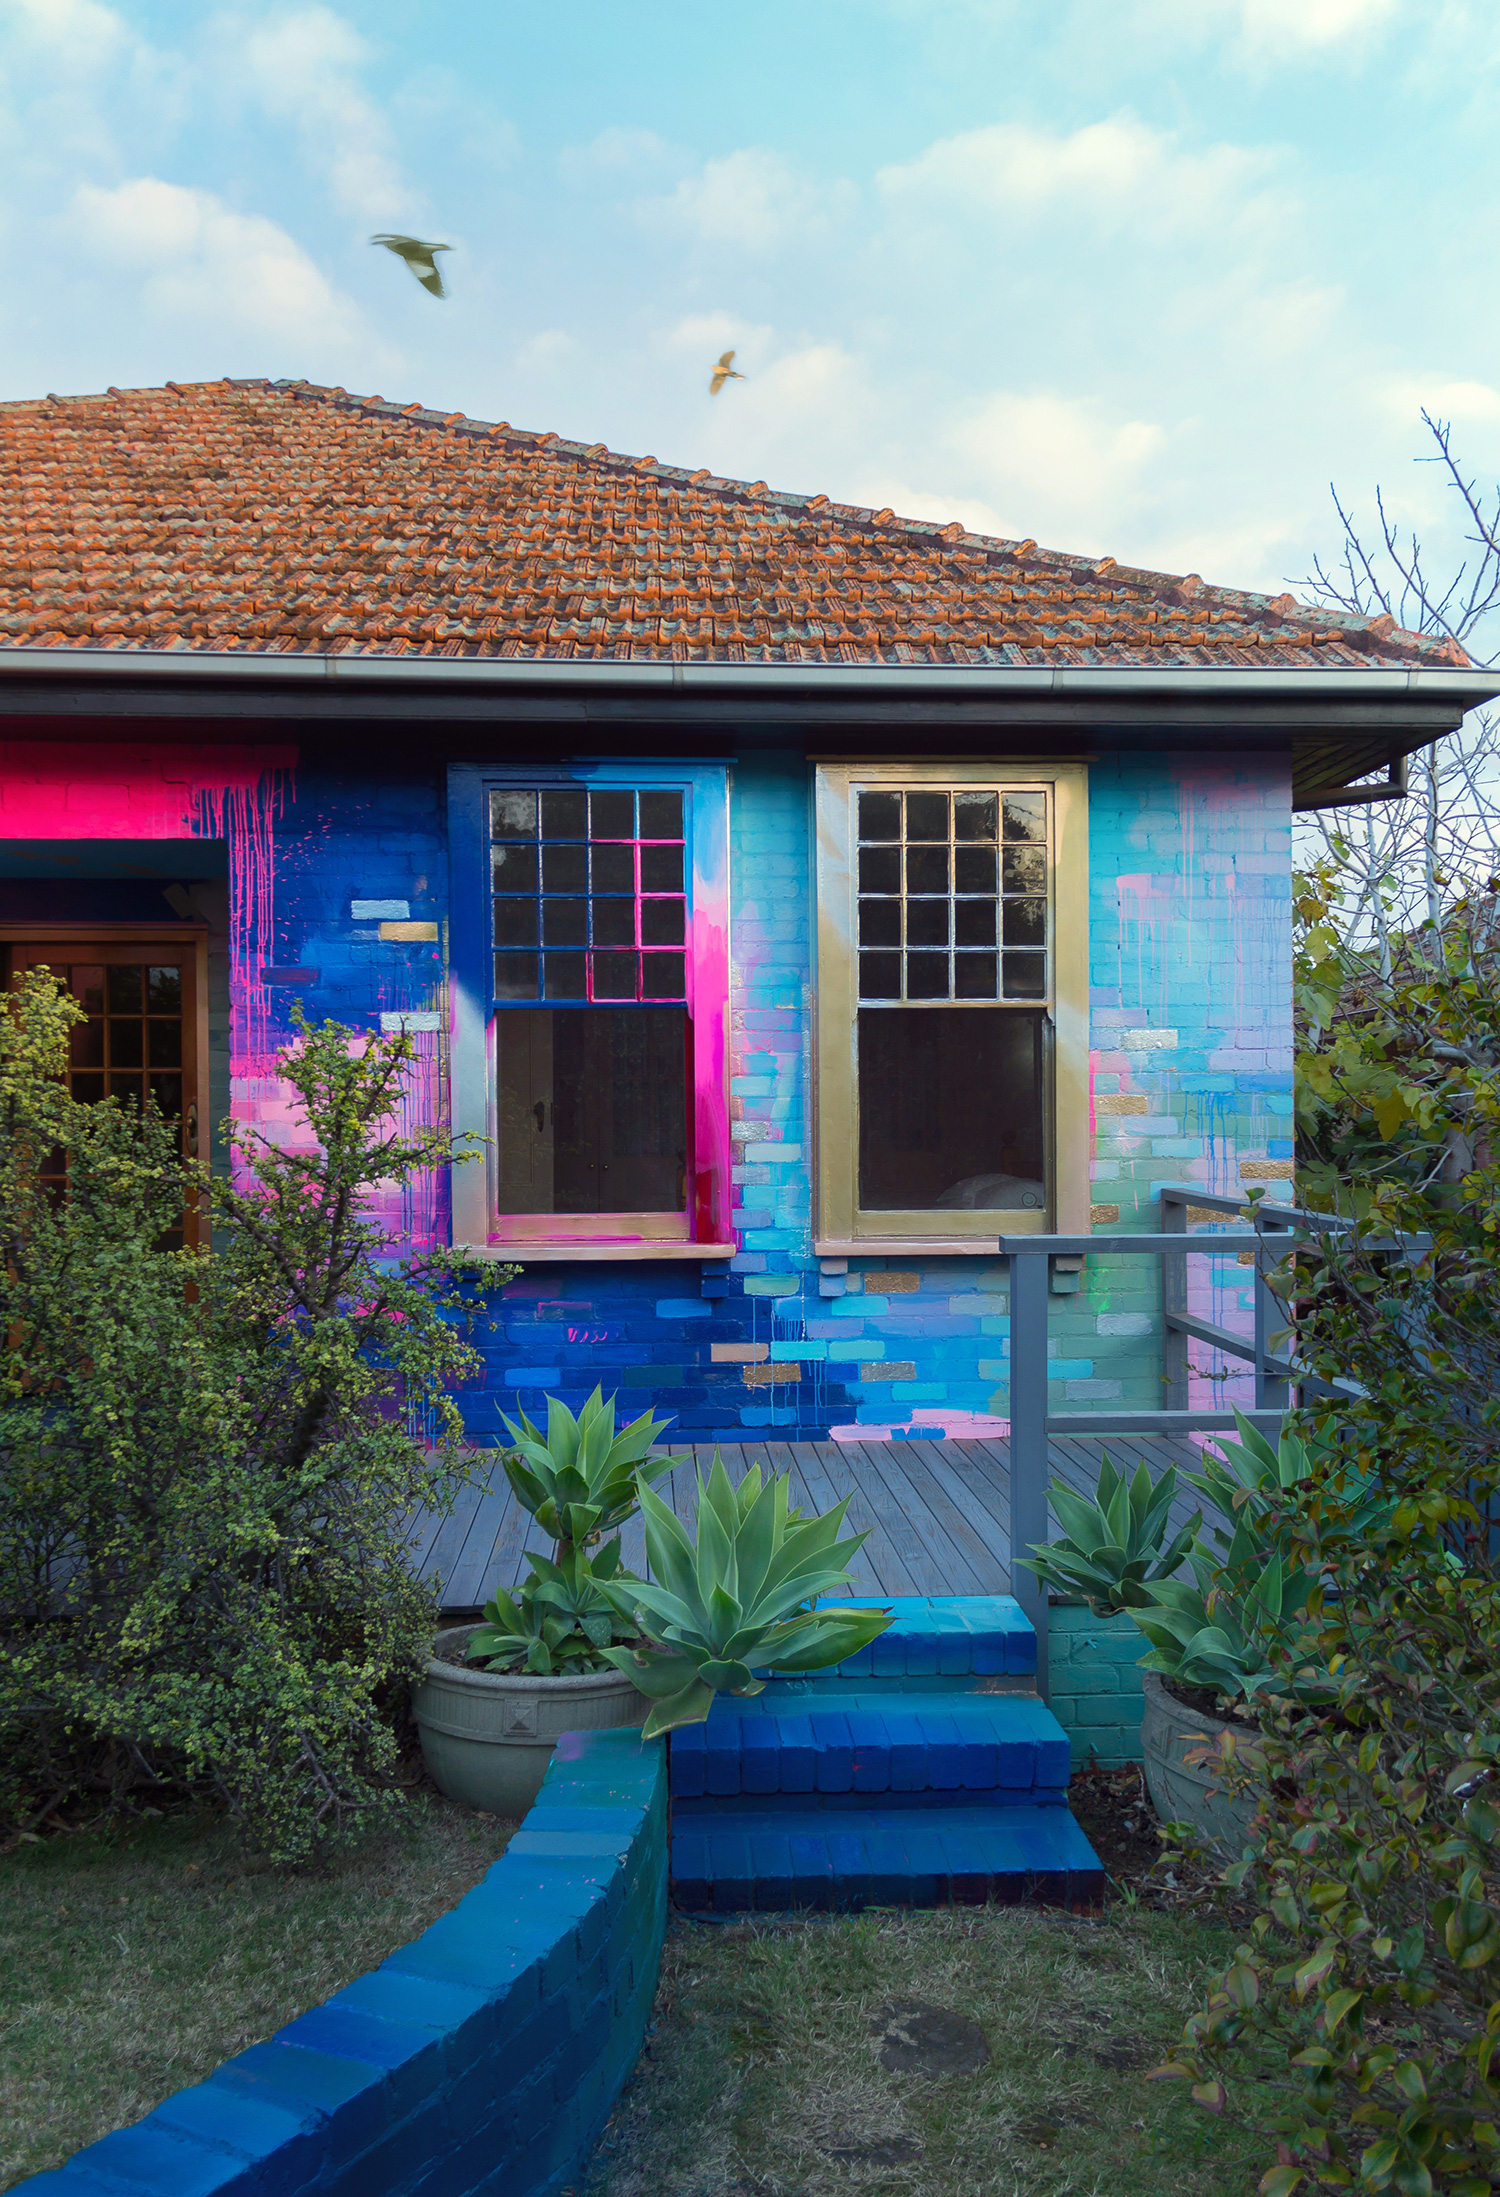 Vibrant abstract exterior mural that covers a residential home with a bright color palette of mostly pink, blue and metallic. Pops of color highlight the bricks and create a sense of movement that leads the eye around the outdoor canvas and upwards to the sky.